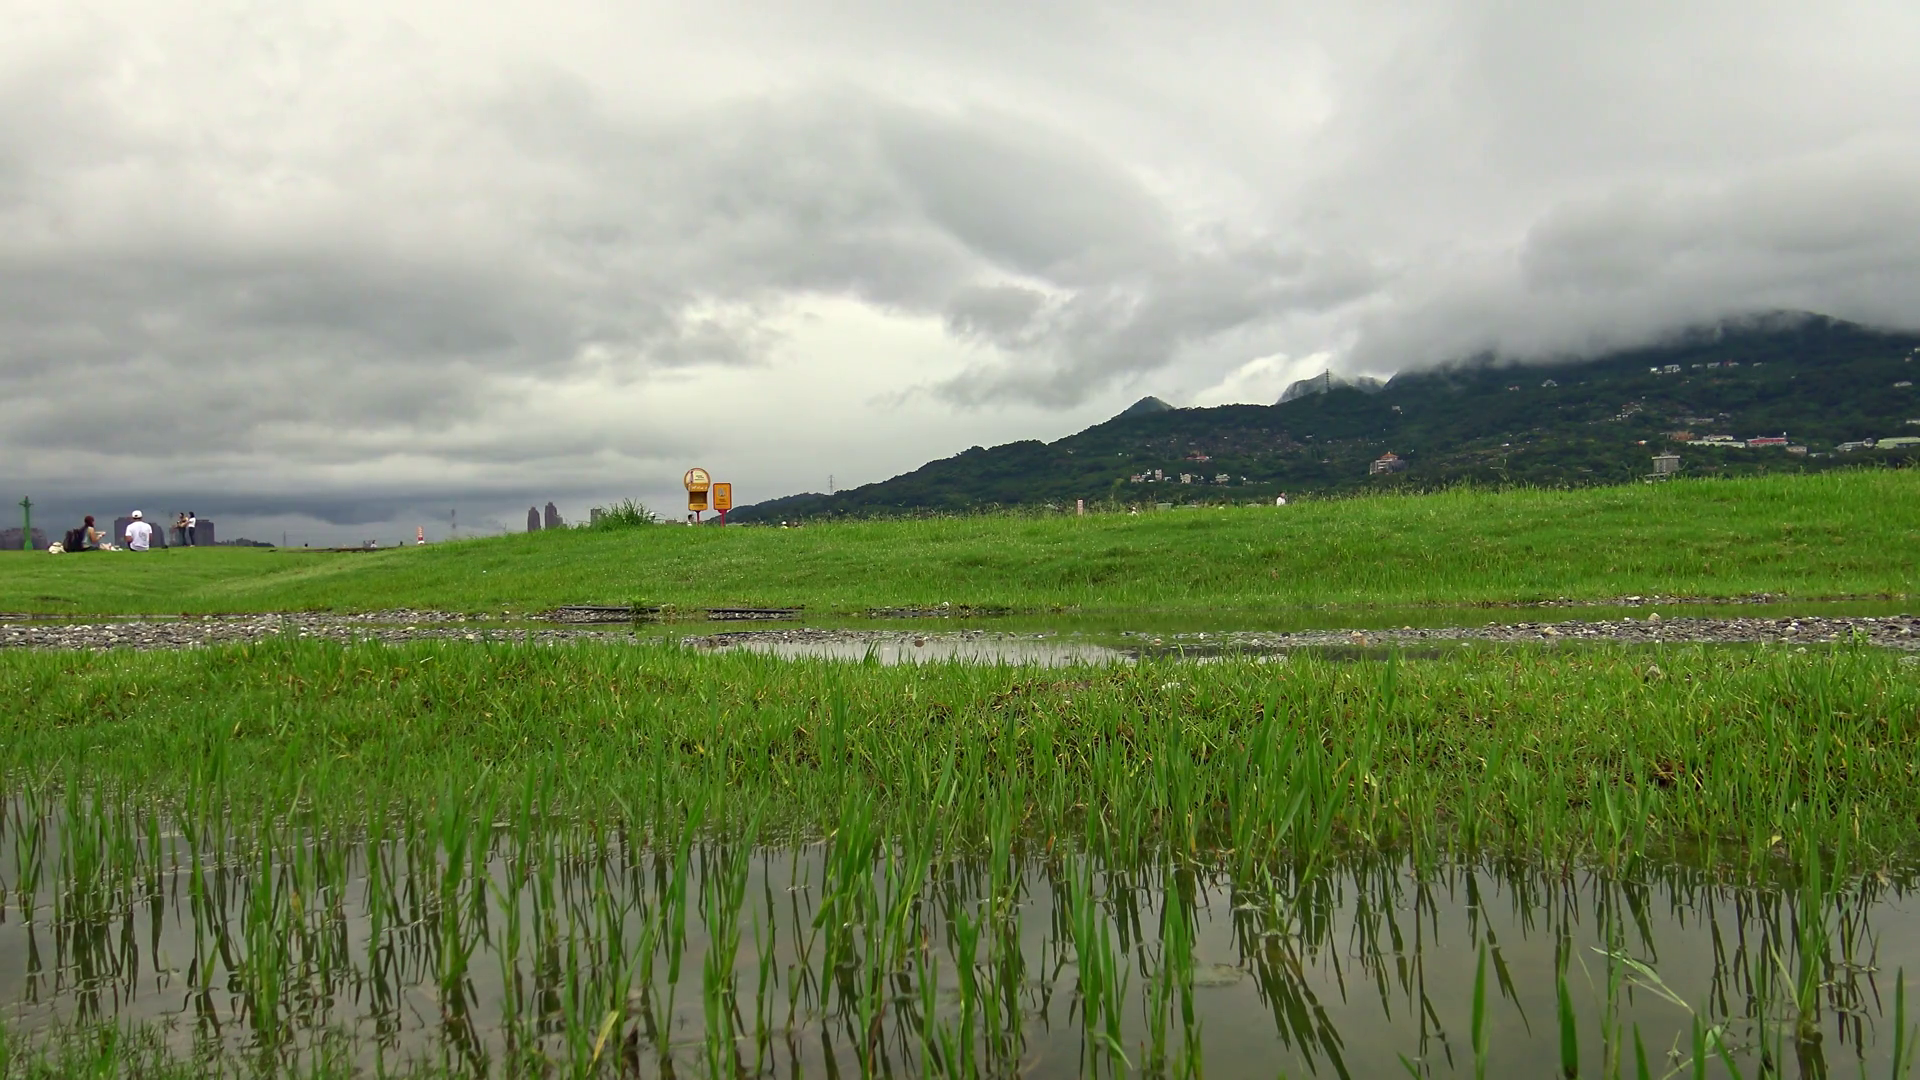 videoblocks-4k-landscape-of-riverside-park-at-tamsui-river-with-grass-and-puddle-water-in-a-calm-cloudy-weather-taipei-dan_sn0fkfnog_thumbnail-full01.png